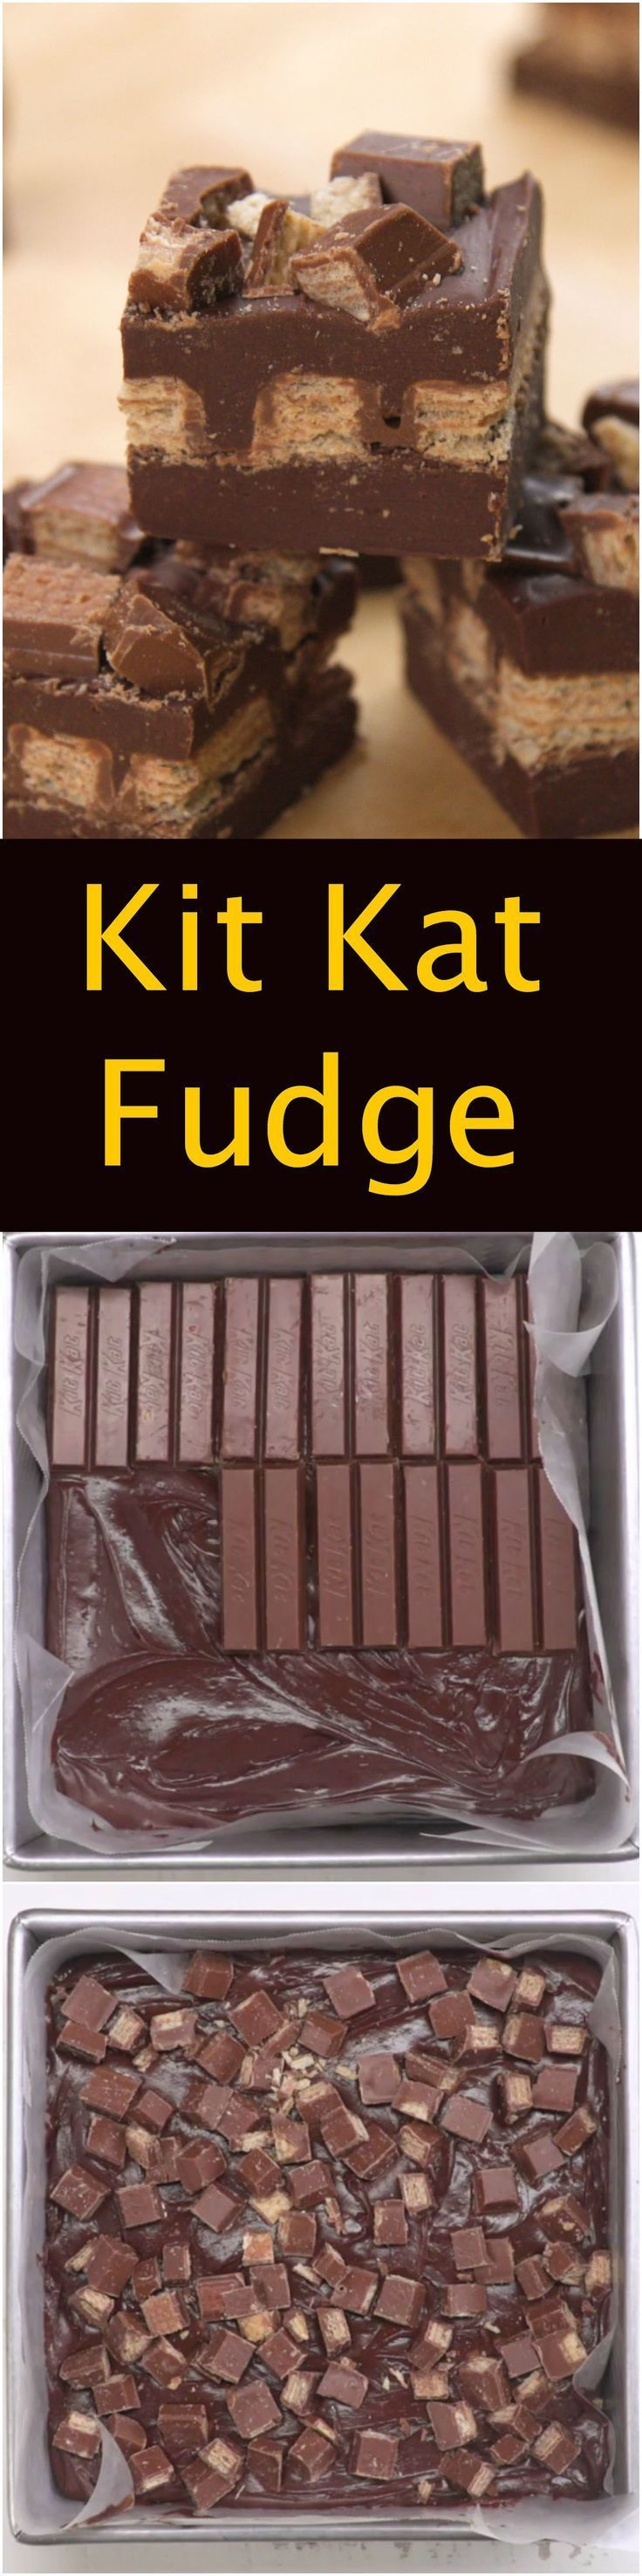 I love Kit Kat's and I love fudge so I thought why not combine them so I could get that nice crunchy wafer in a fudge bite. I had similar success with my Peanut